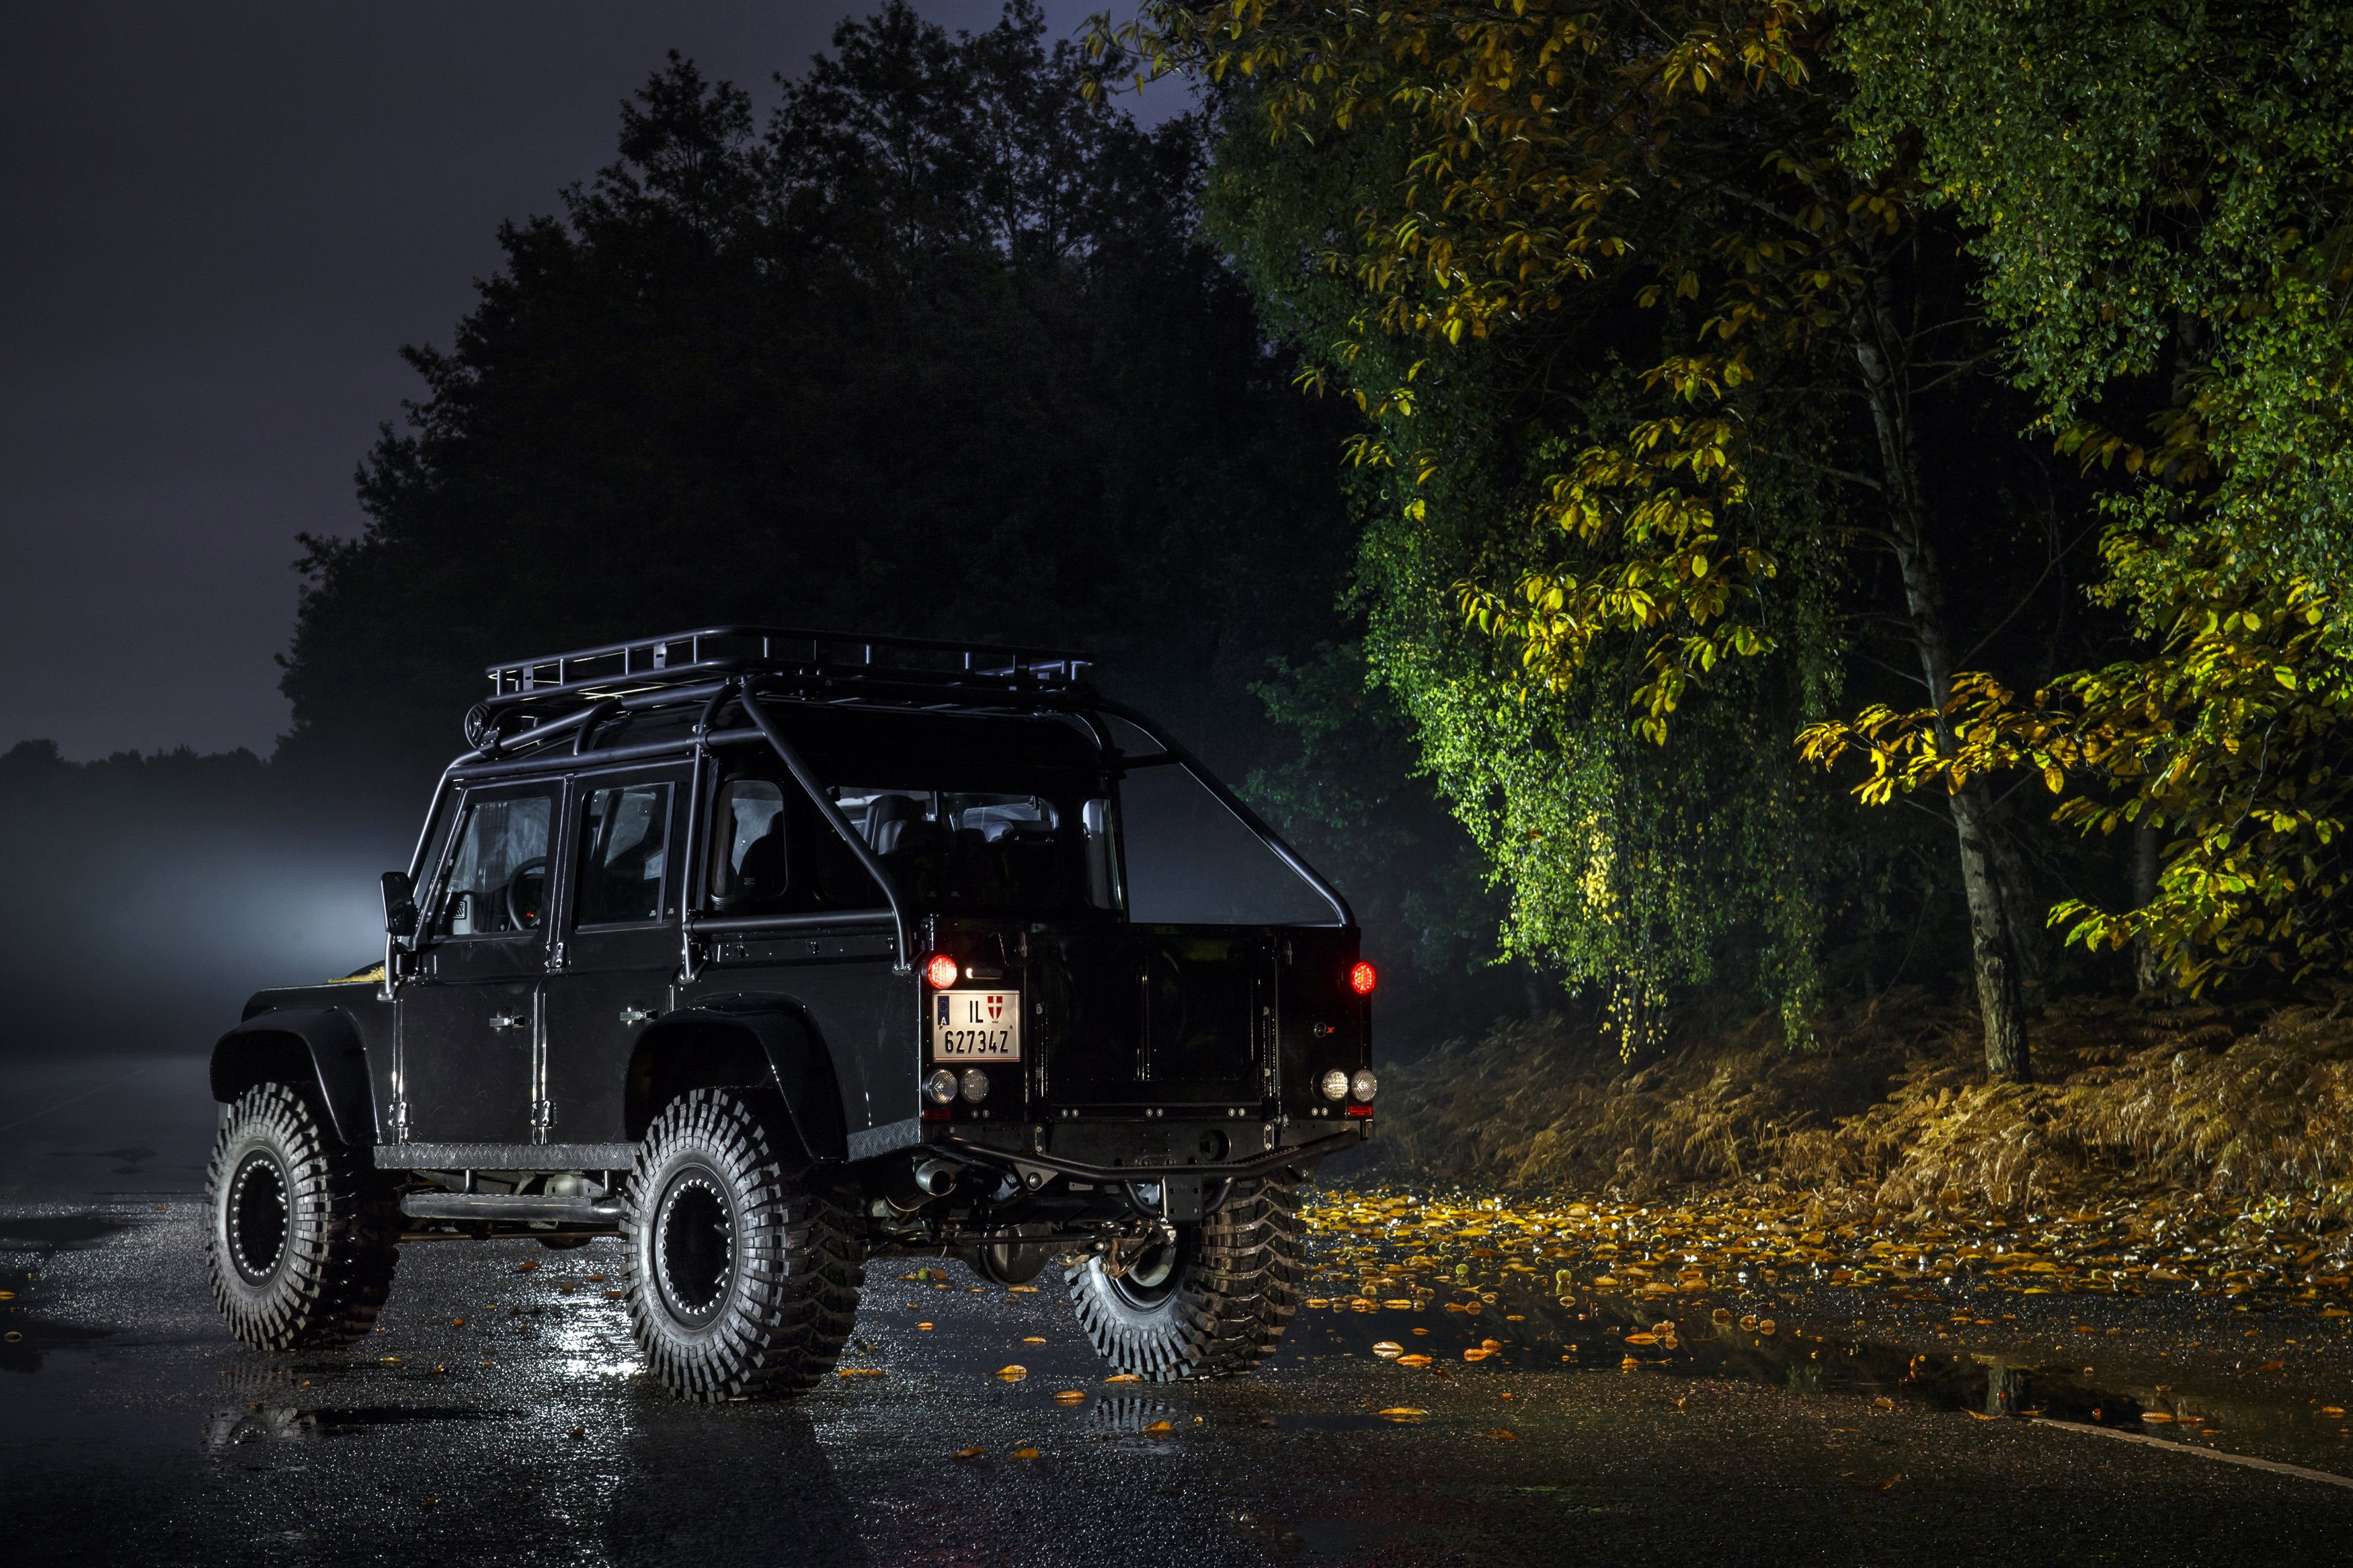 Land Rover Defender 110 007 Spectre cars 4x4 black movies ...